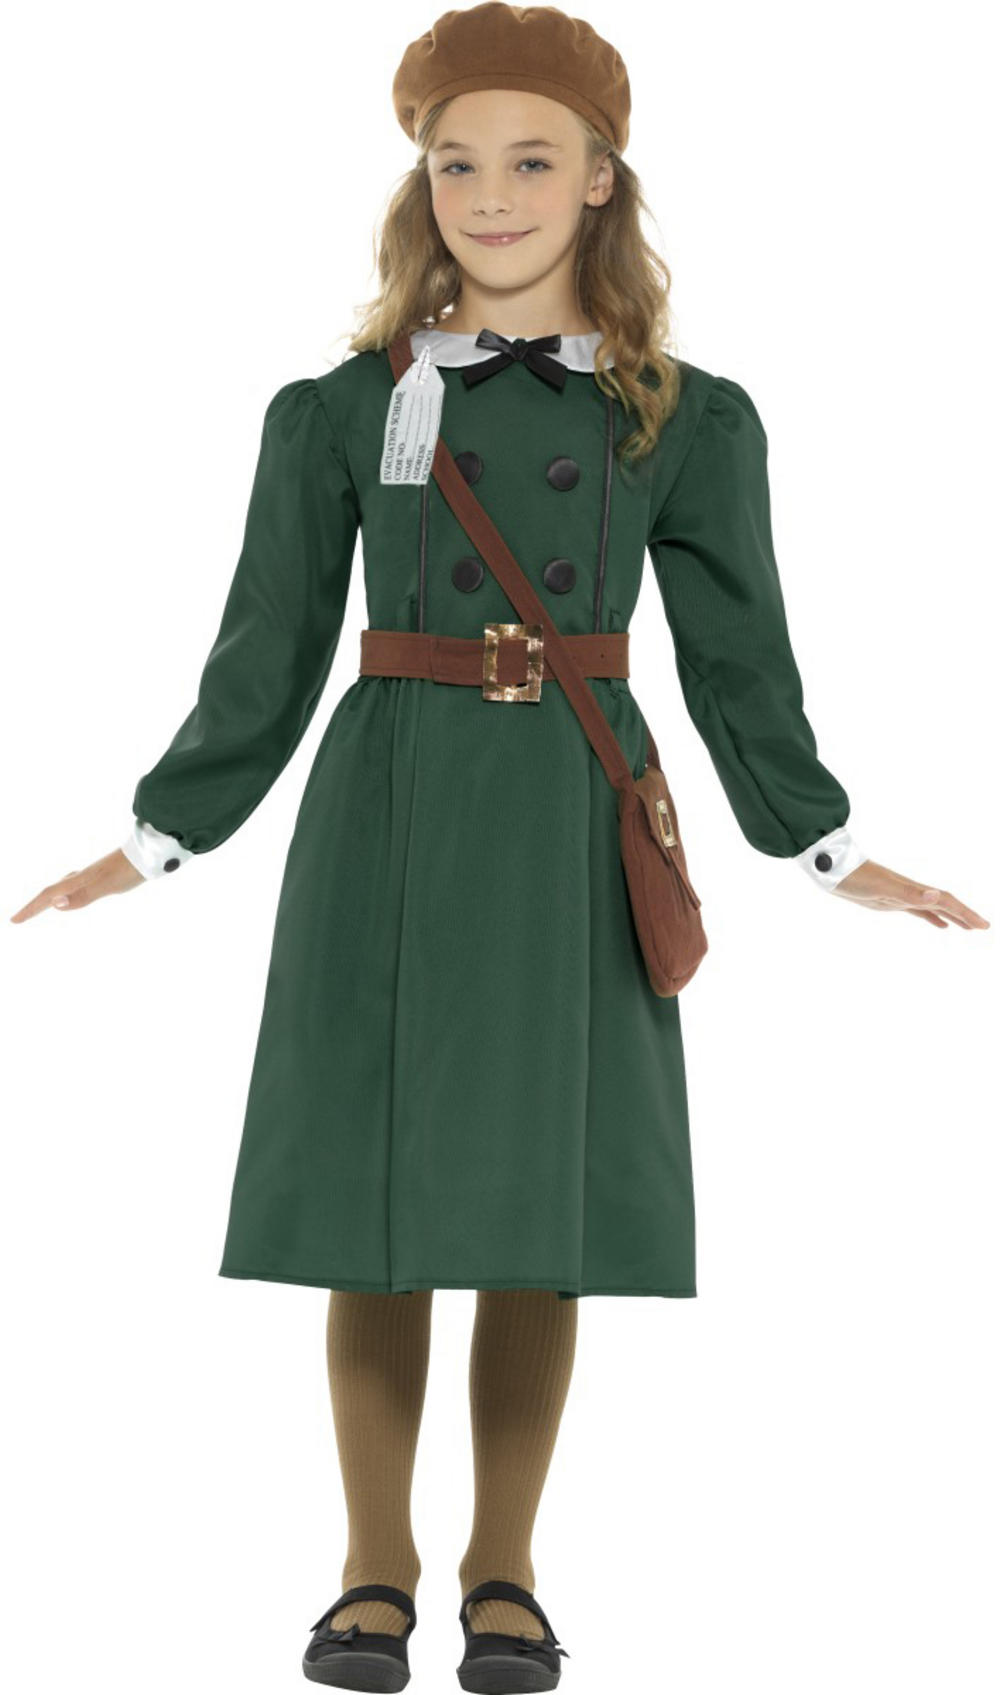 WW2 Evacuee Girls Costume